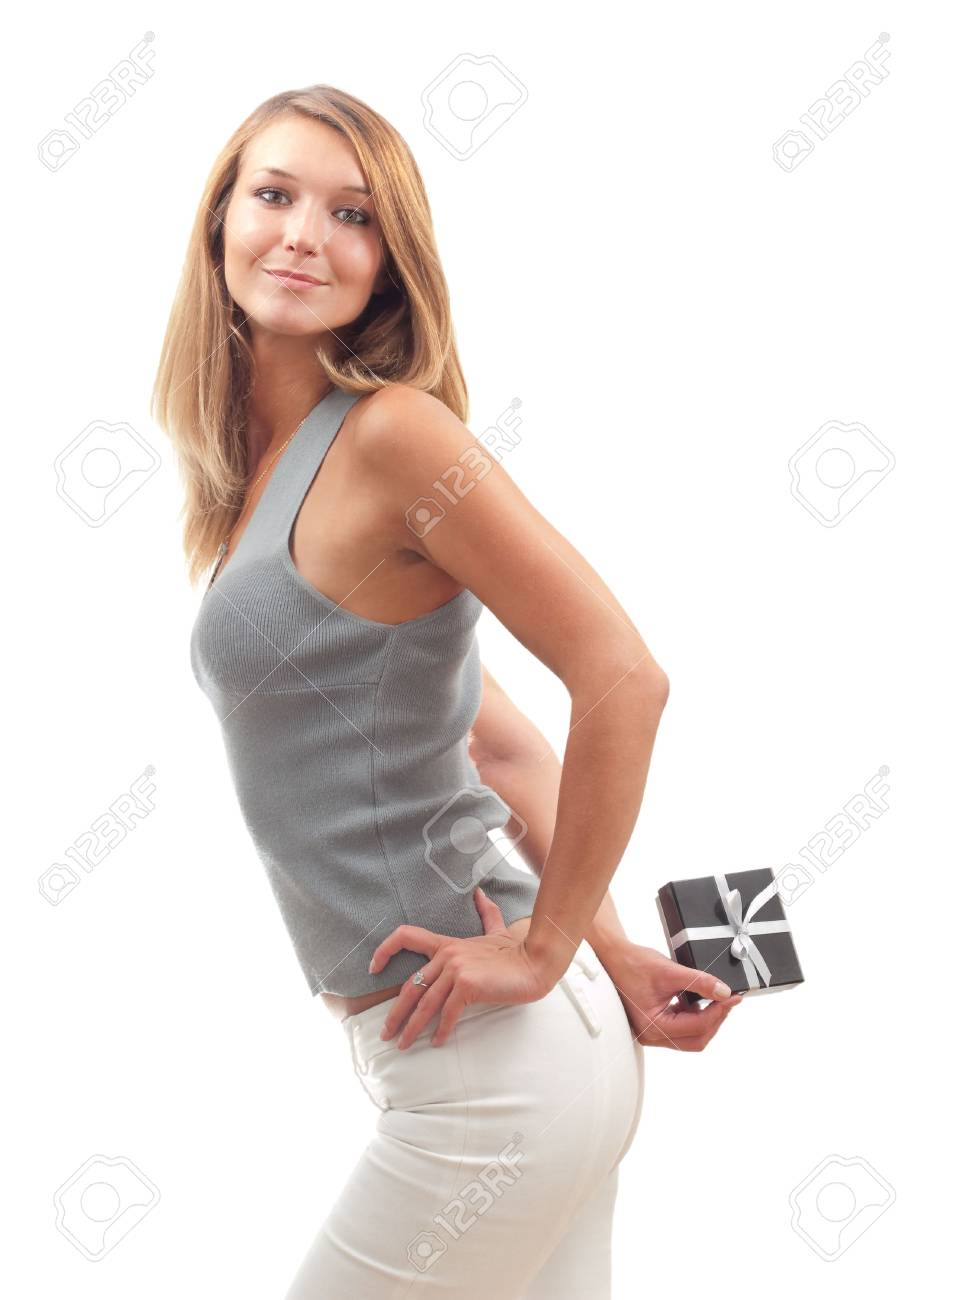 Beautiful young woman hiding a gift behind her back Stock Photo - 6784597